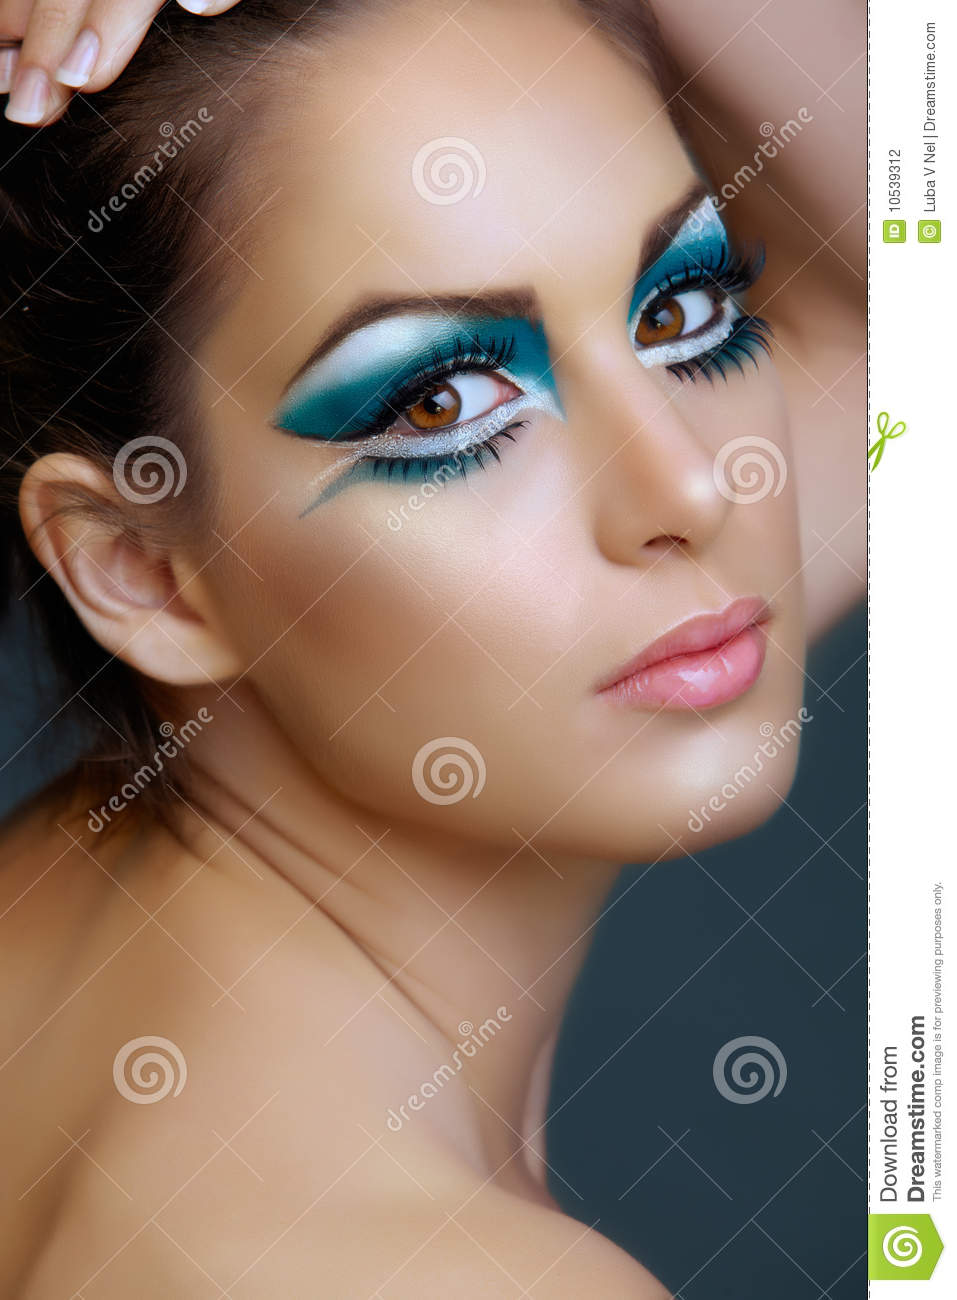 Woman With Turquoise Make Up Stock Photo Image Of Eyes